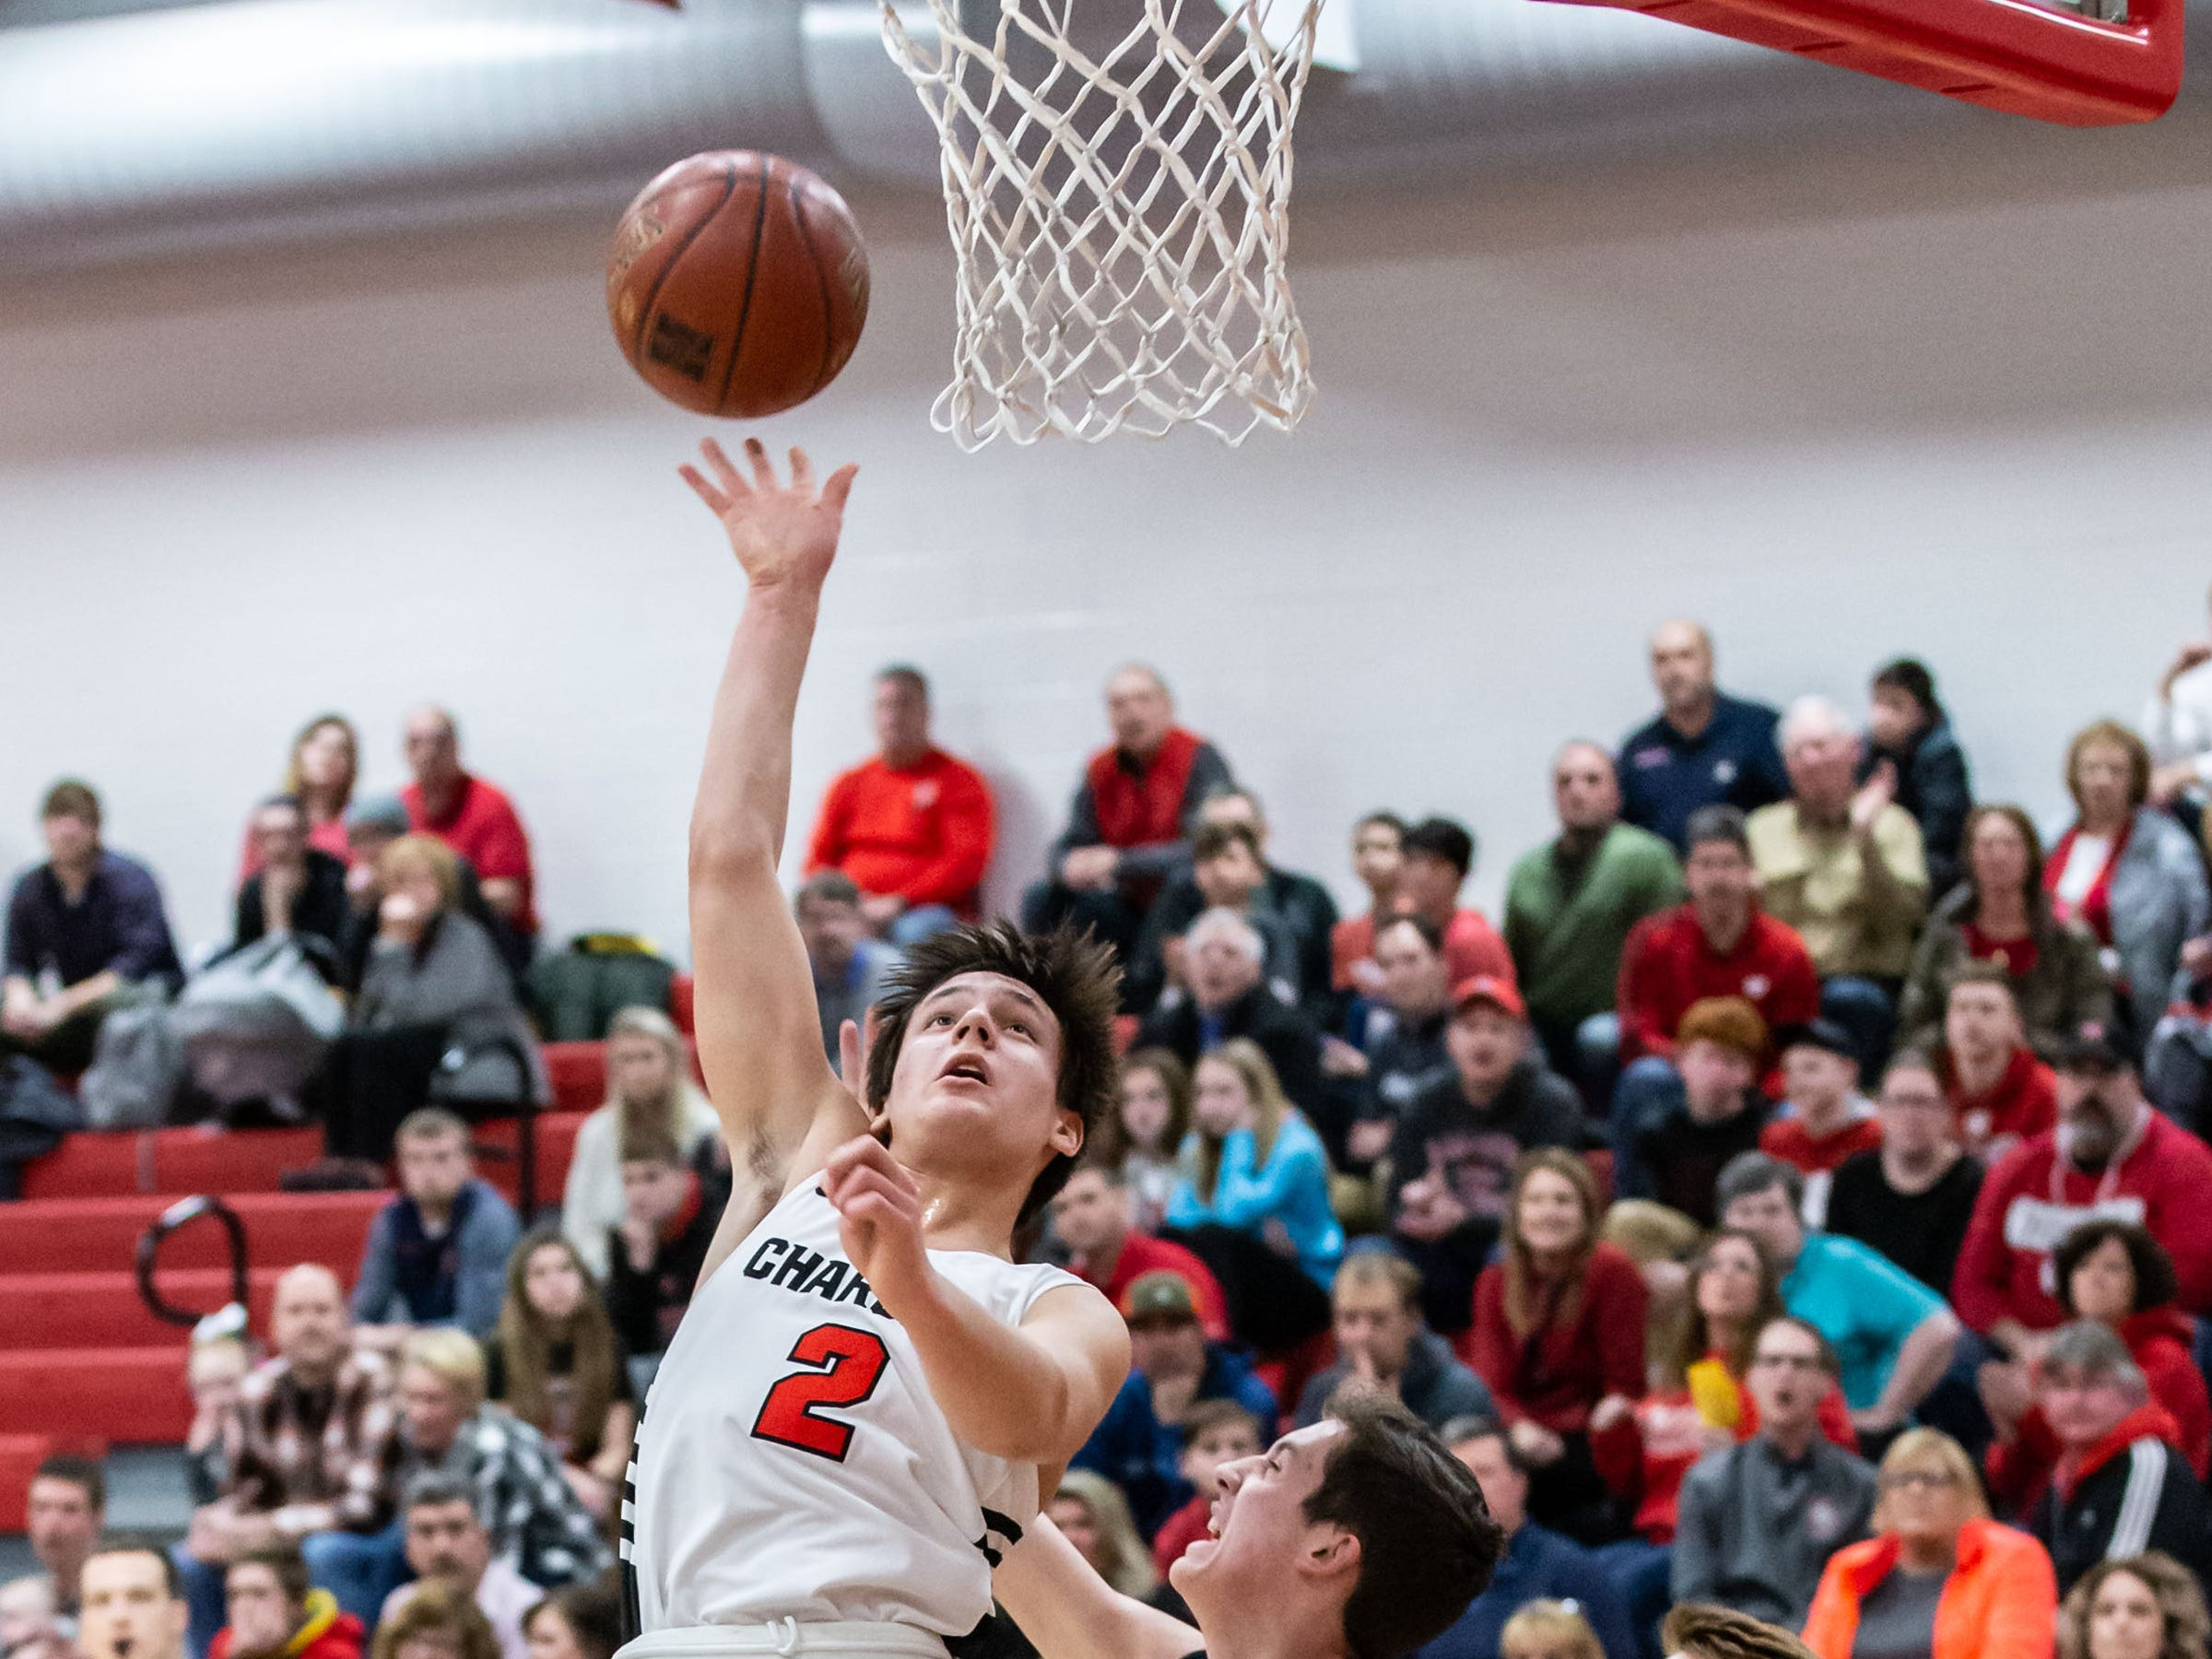 Hamilton's Tanner Resch (2) tips in his own rebound for two during the game at home against Germantown on Thursday, Feb. 14, 2019.